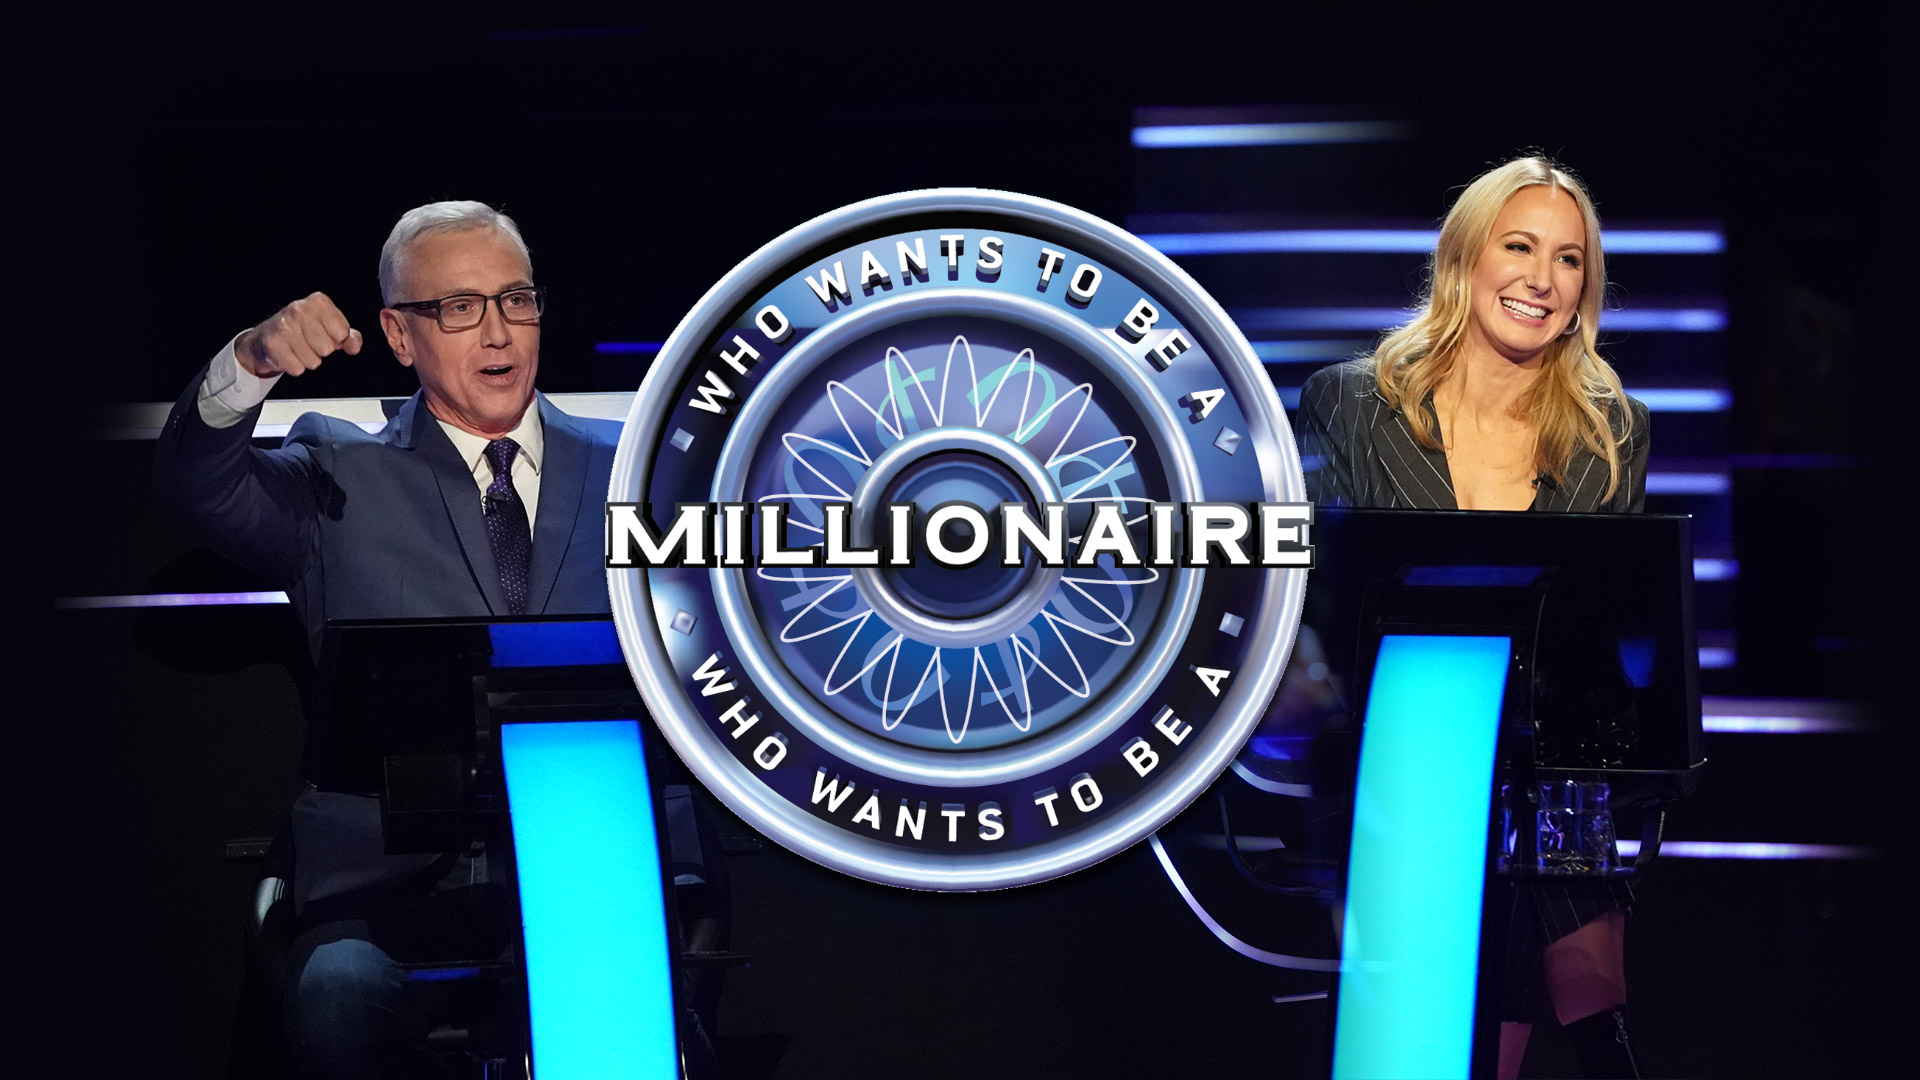 Who Wants To Be A Millionaire? Dr. Drew Helps Nikki Glaser For Charity